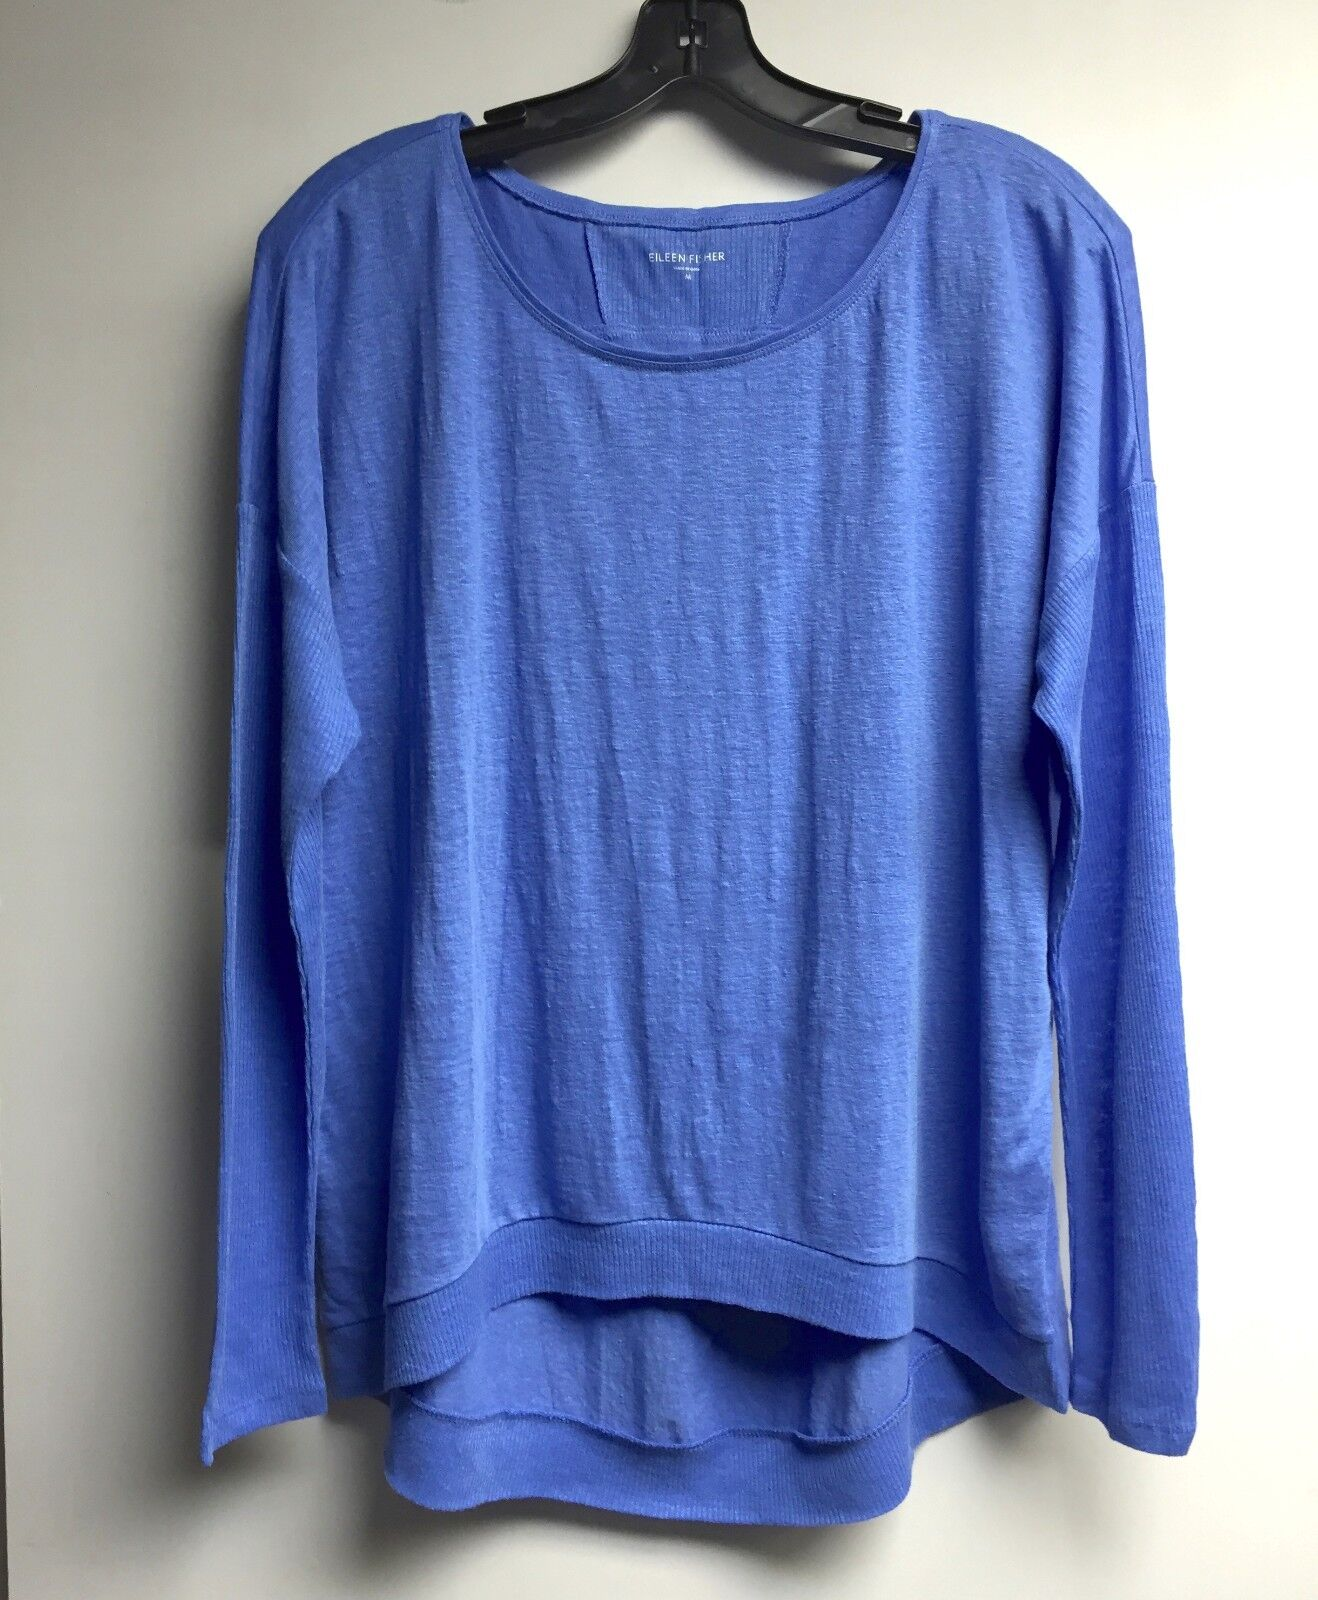 NWT EILEEN FISHER BlauBELL L S Bateau Neck Wedge Top LARGE BRAND NEW T2488M